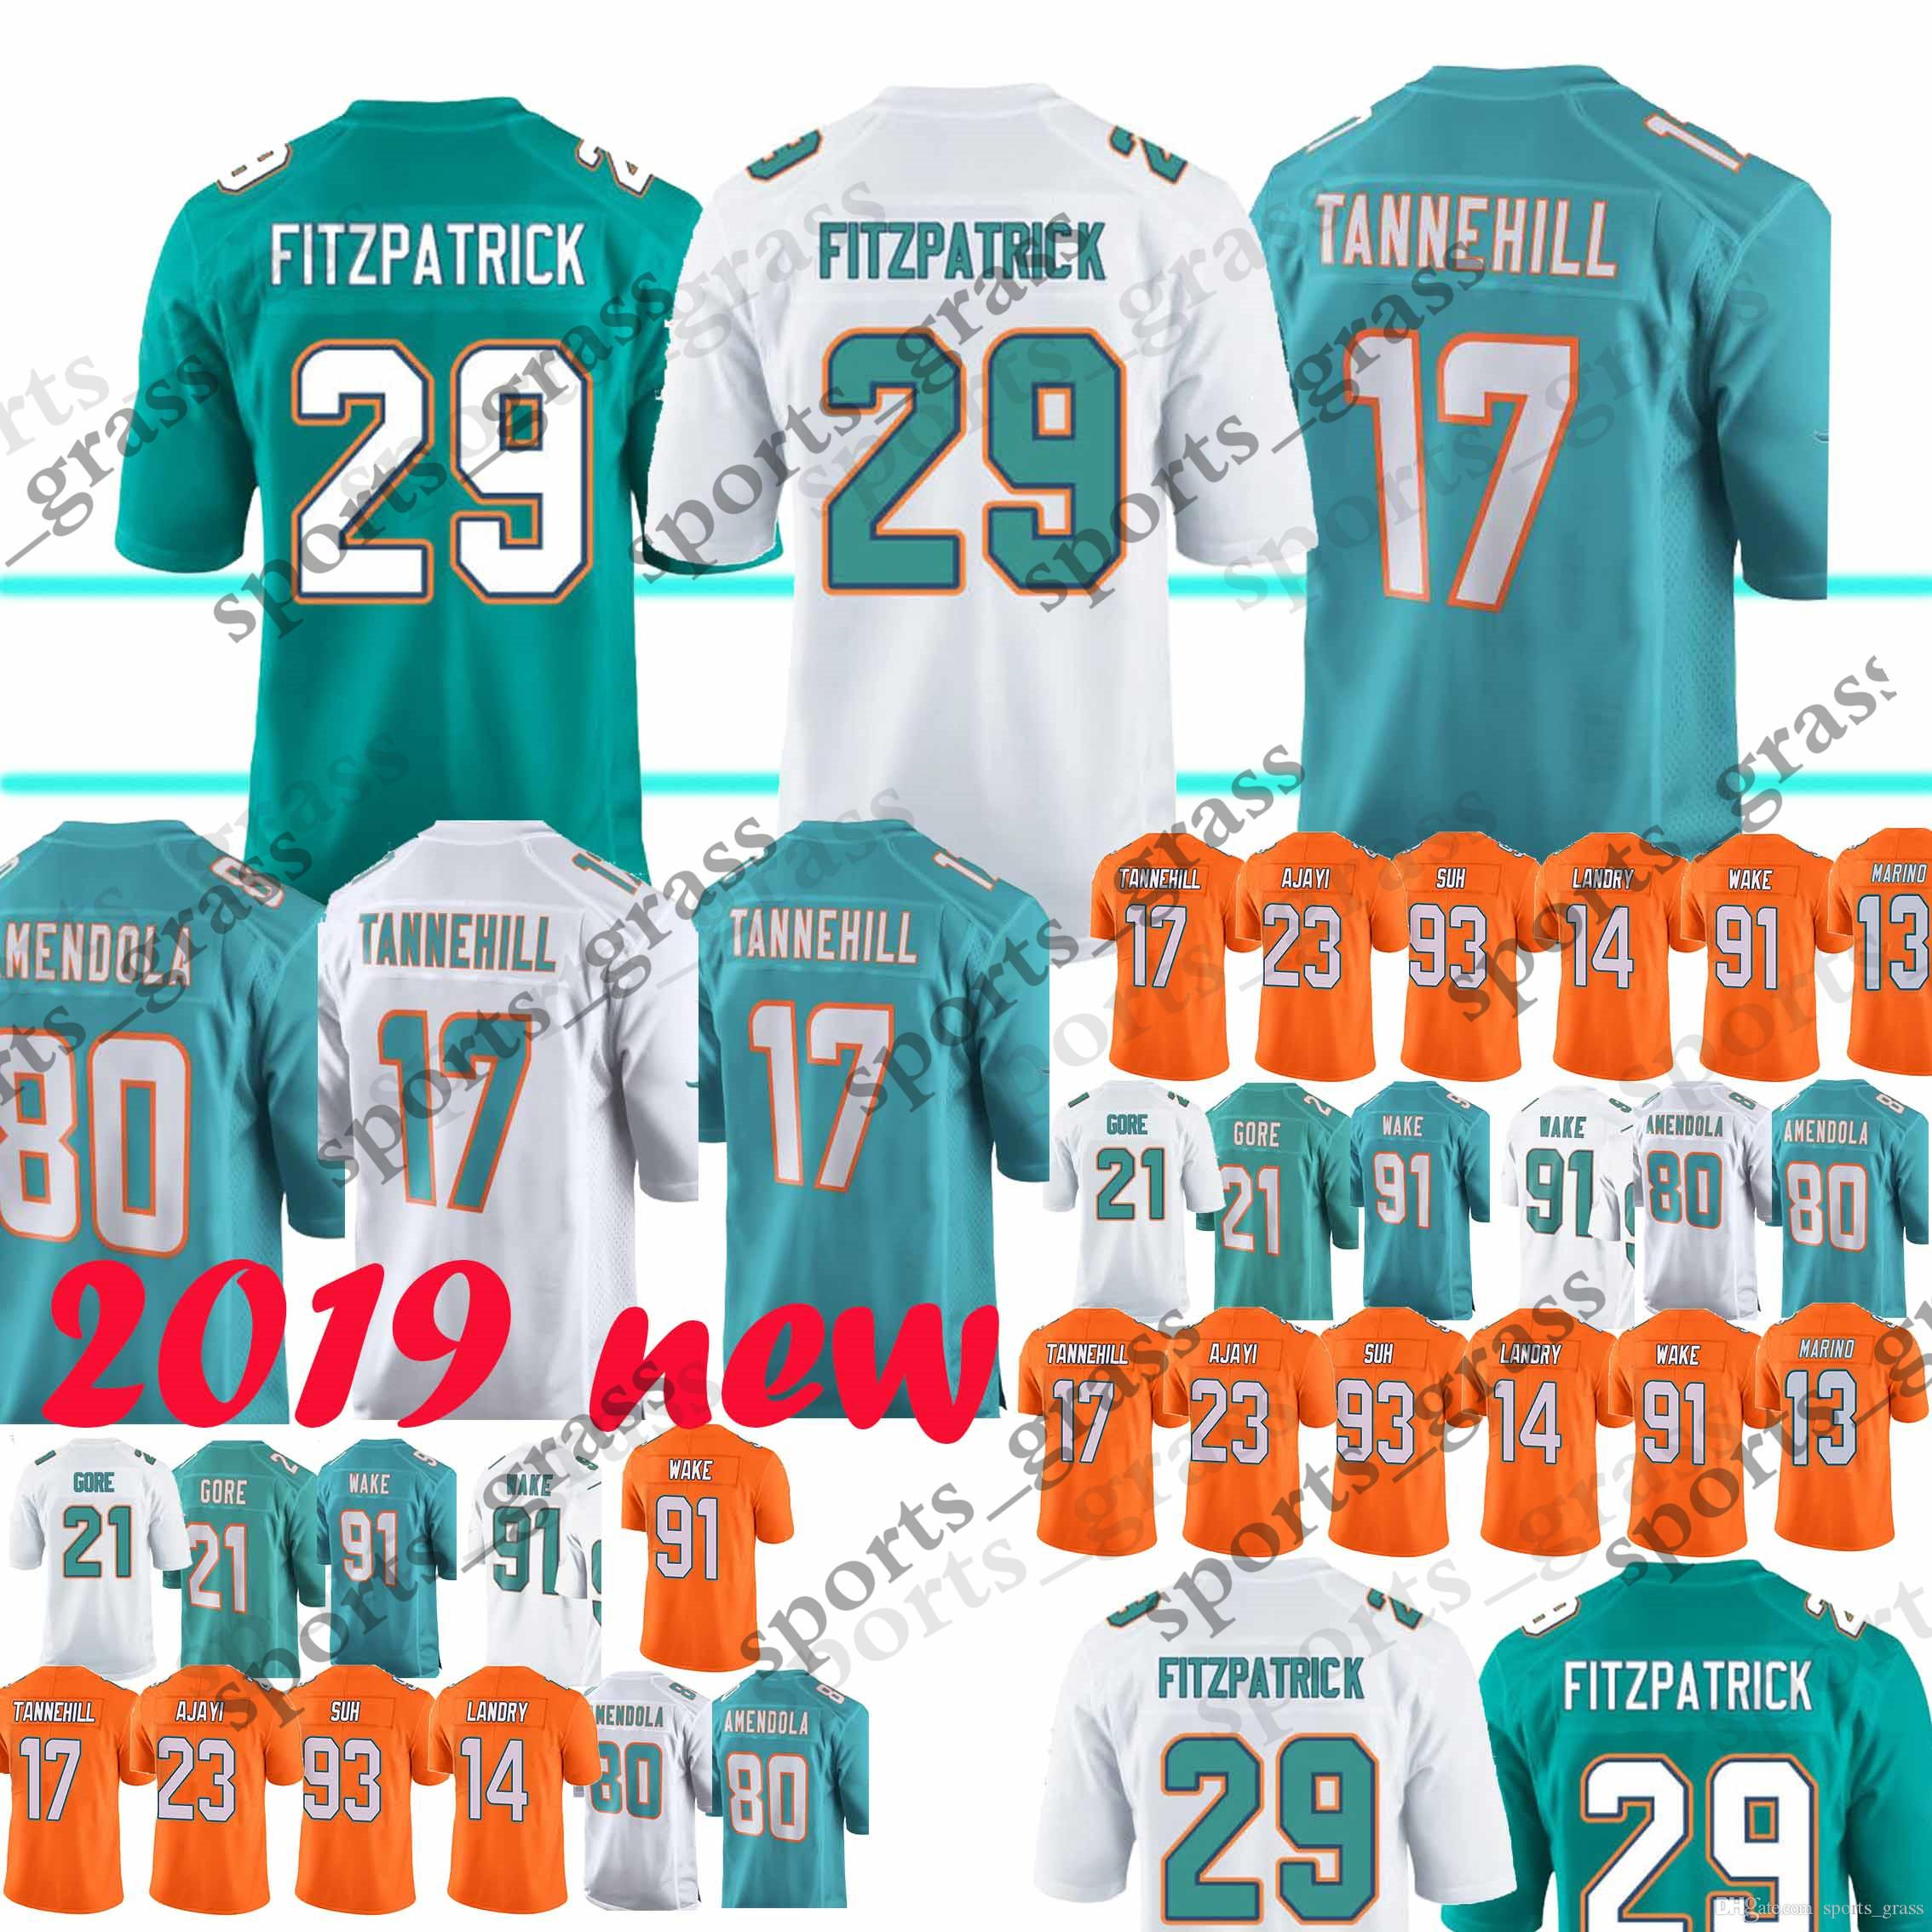 separation shoes 96af9 d5cd5 Miami Jerseys Dolphins 29 Minkah Fitzpatrick 21 Frank Gore 80 Danny  Amendola 91 Cameron Wake 13 Dan Marino 17 Ryan Tannehill Jerseys 2018